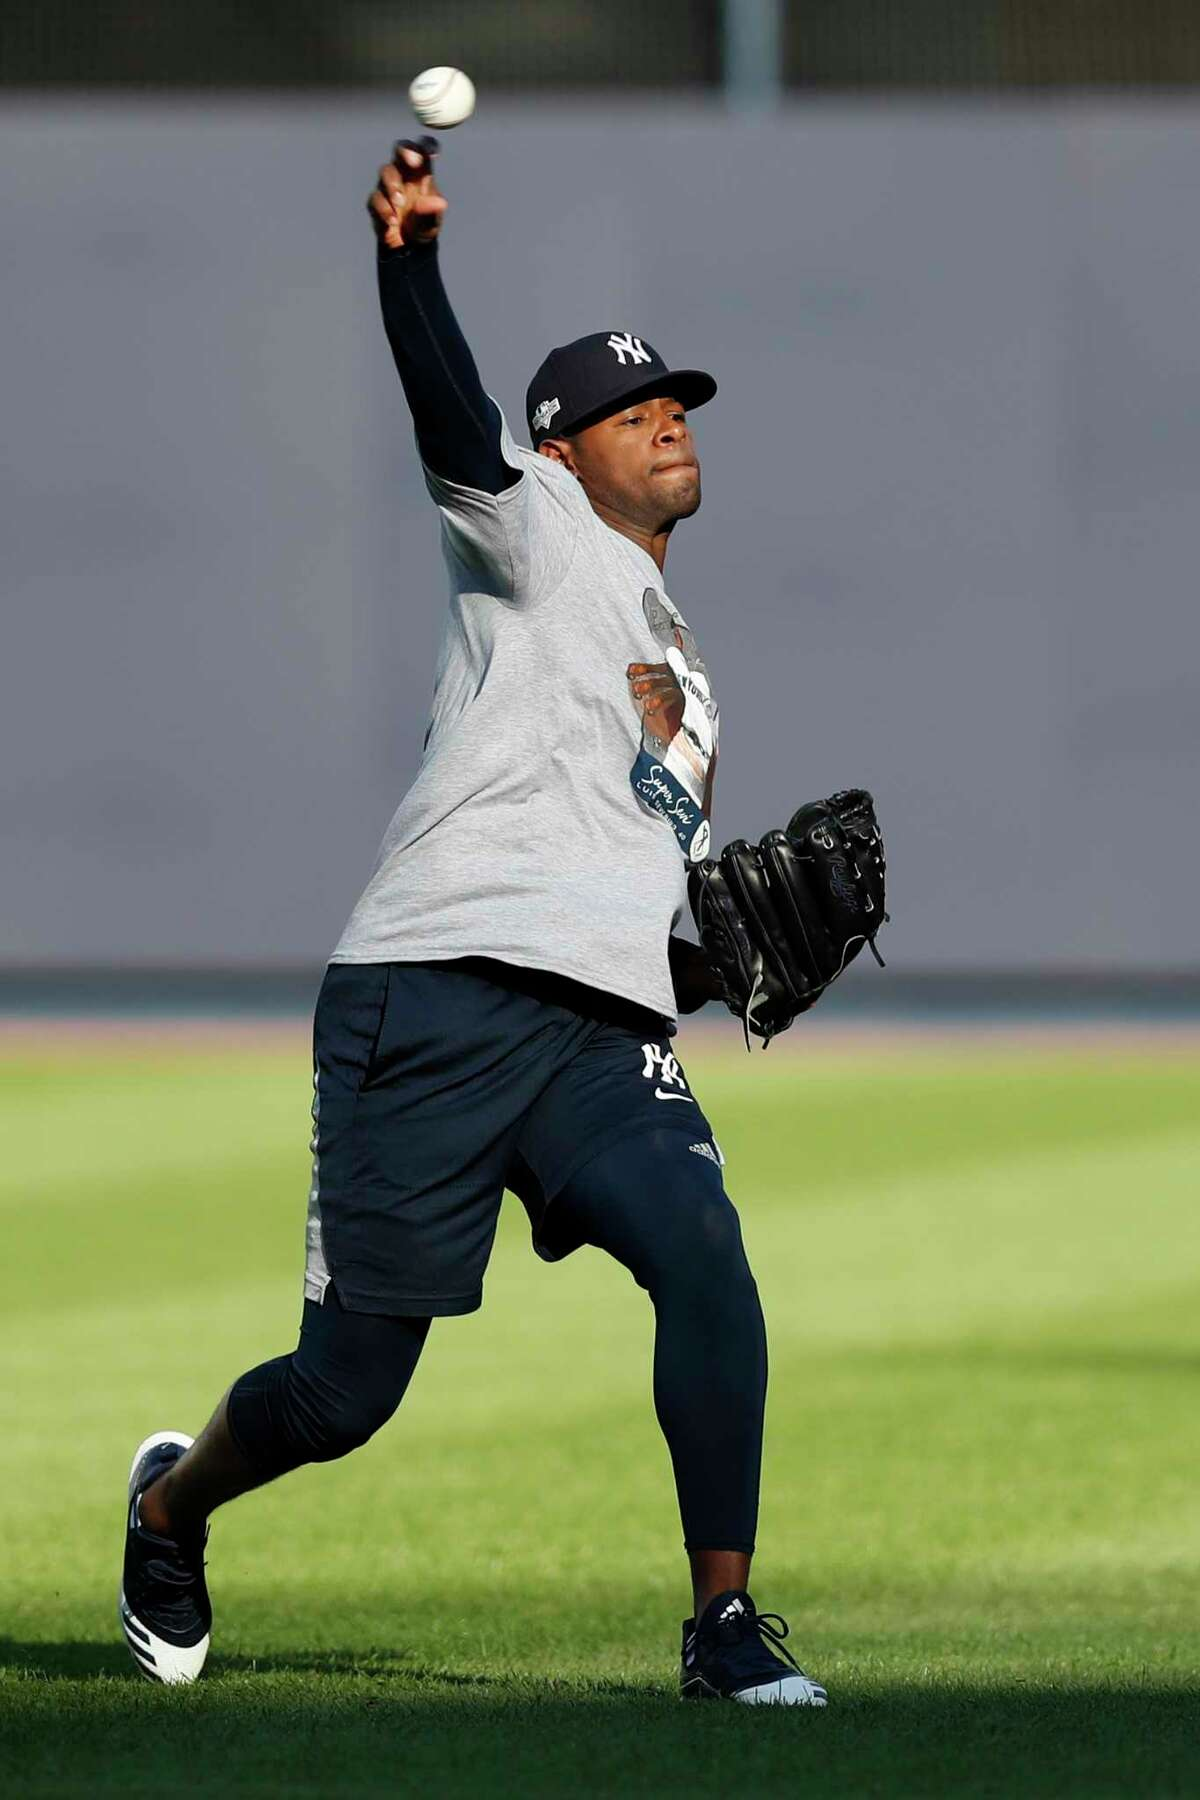 New York Yankees starting pitcher Luis Severino throws on an empty field, Monday, Oct. 14, 2019, at Yankee Stadium in New York on an off day during the American League Championship Series between the Yankees and the Houston Astros. Severino is scheduled to face Astros' ace Gerrit Cole in Game 3, scheduled for Tuesday afternoon in New York. (AP Photo/Kathy Willens)